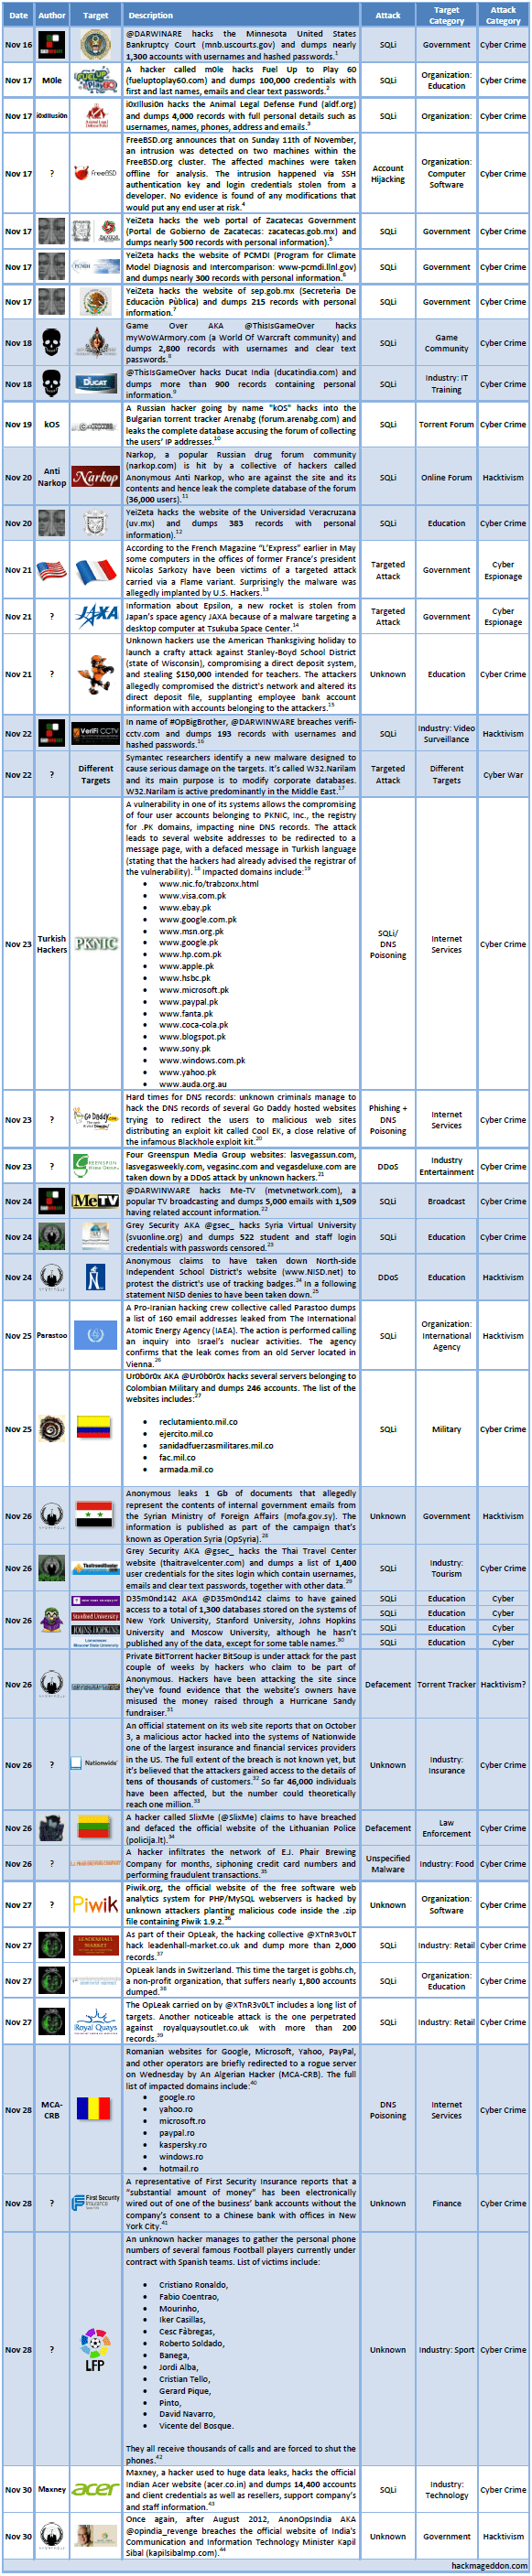 16-30 November 2012 Cyber Attacks Timeline